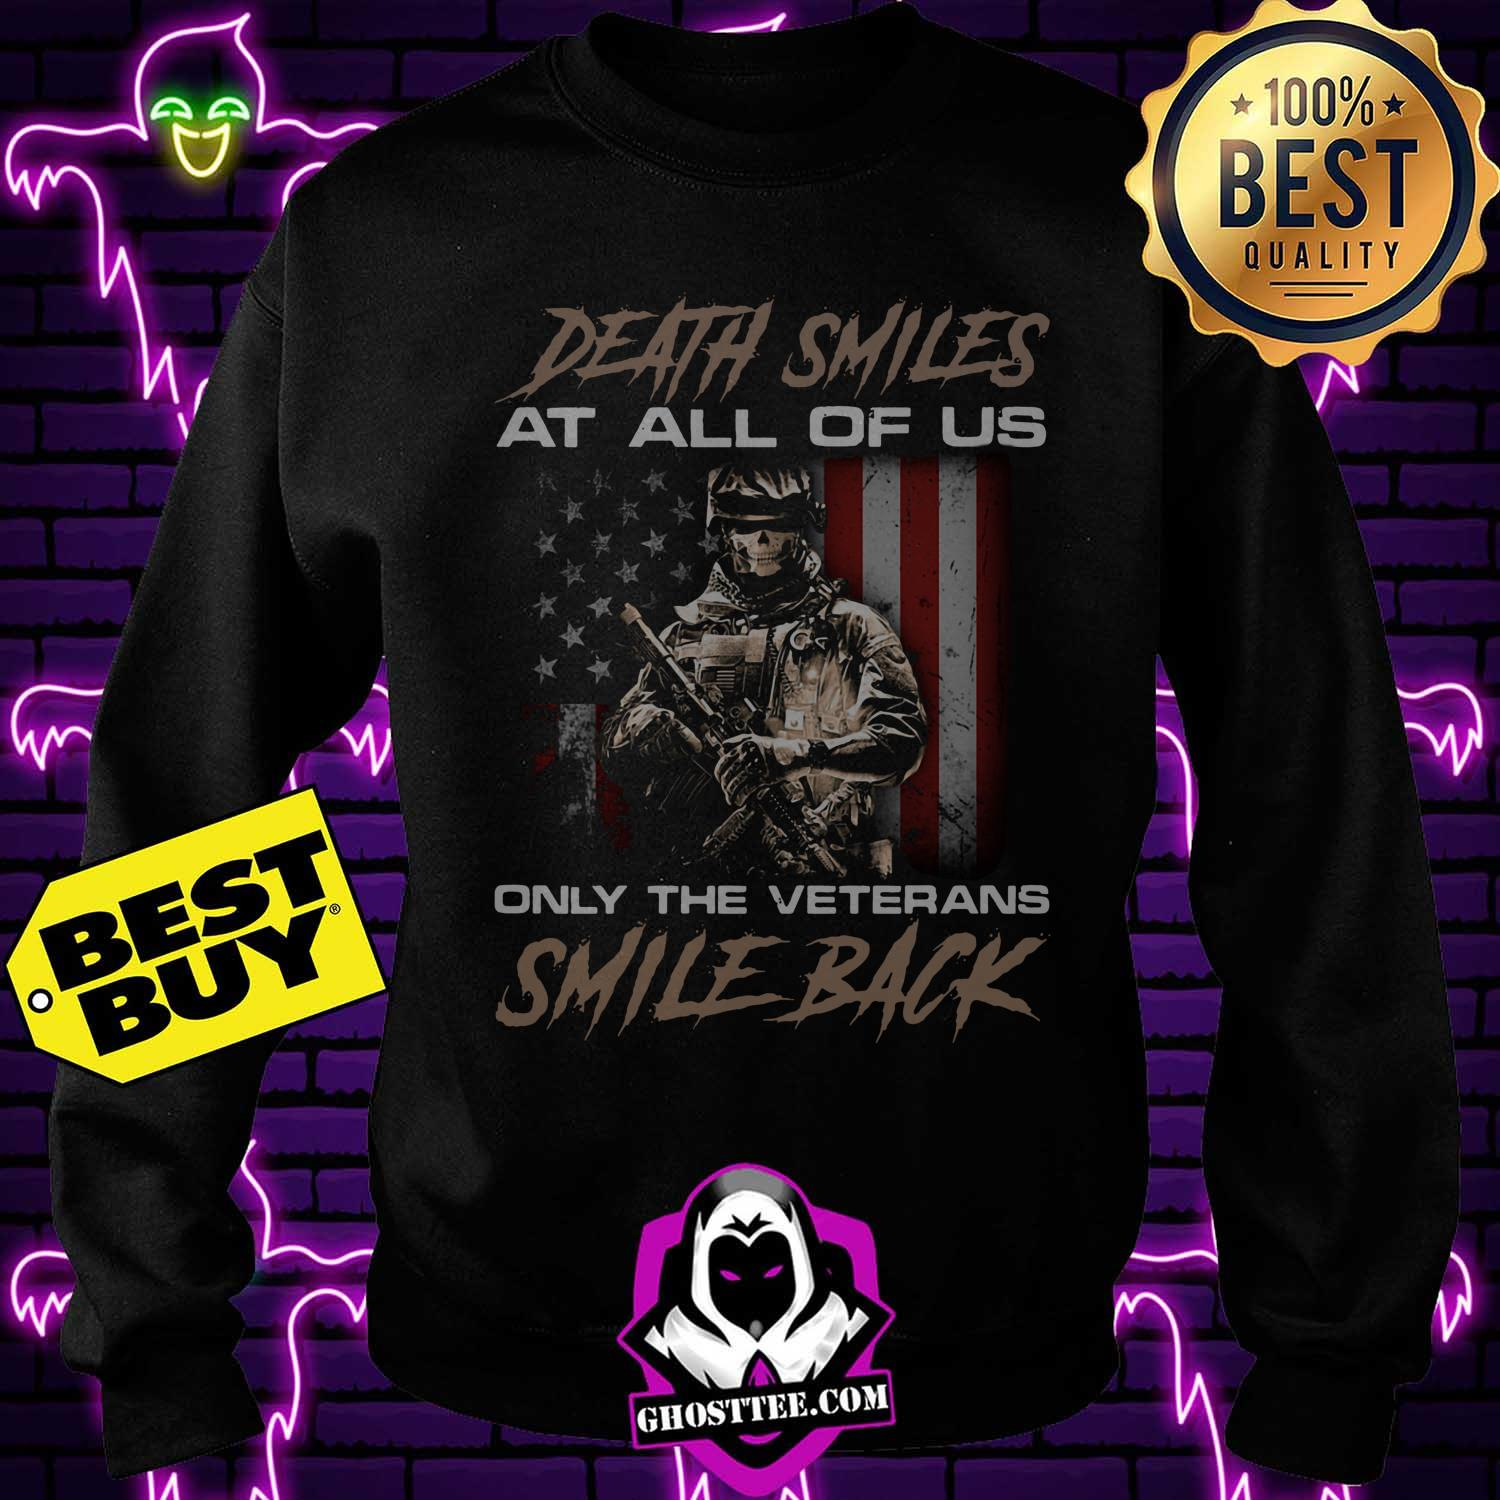 death smiles at all of us only the veterans smile back america flag sweatshirt - Death smiles at all of us only the veterans smile back America Flag shirt